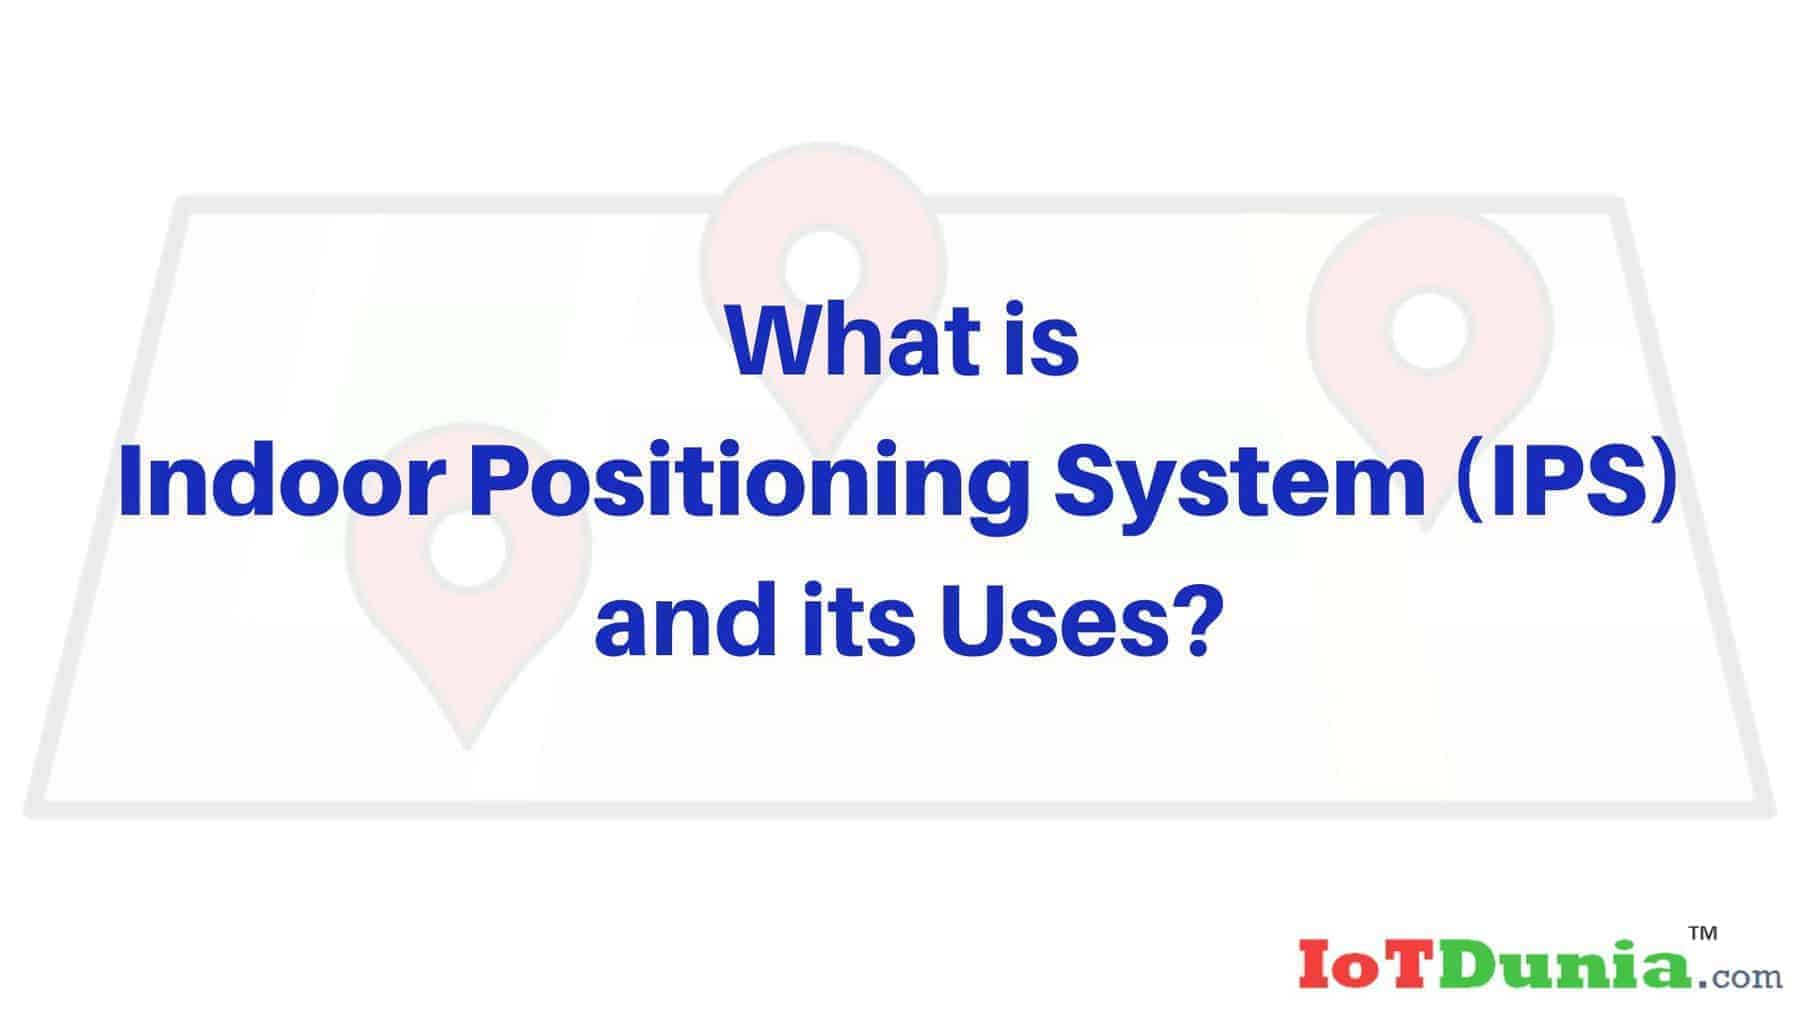 What is Indoor Positioning System and its Uses?